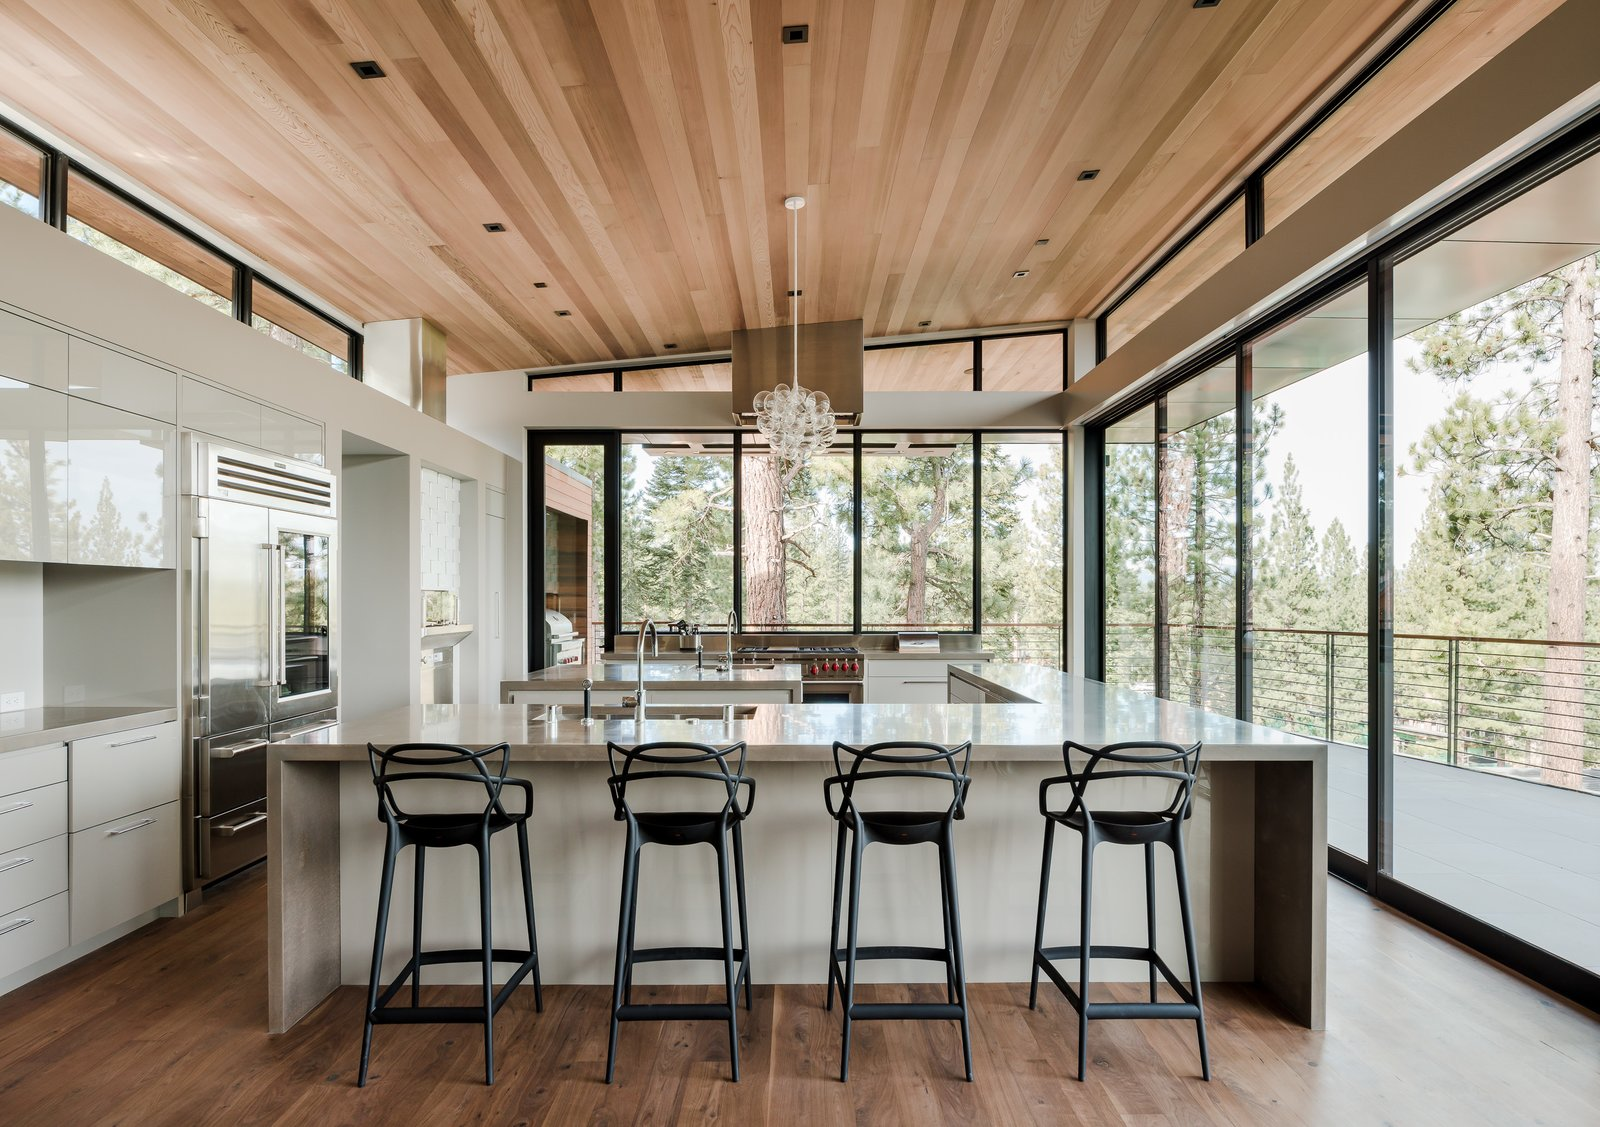 Kitchen, Engineered Quartz Counter, White Cabinet, Medium Hardwood Floor, Ceiling Lighting, Recessed Lighting, Refrigerator, Accent Lighting, Wall Oven, Range, and Undermount Sink  Martis Camp Residence 2 by John Maniscalco Architecture